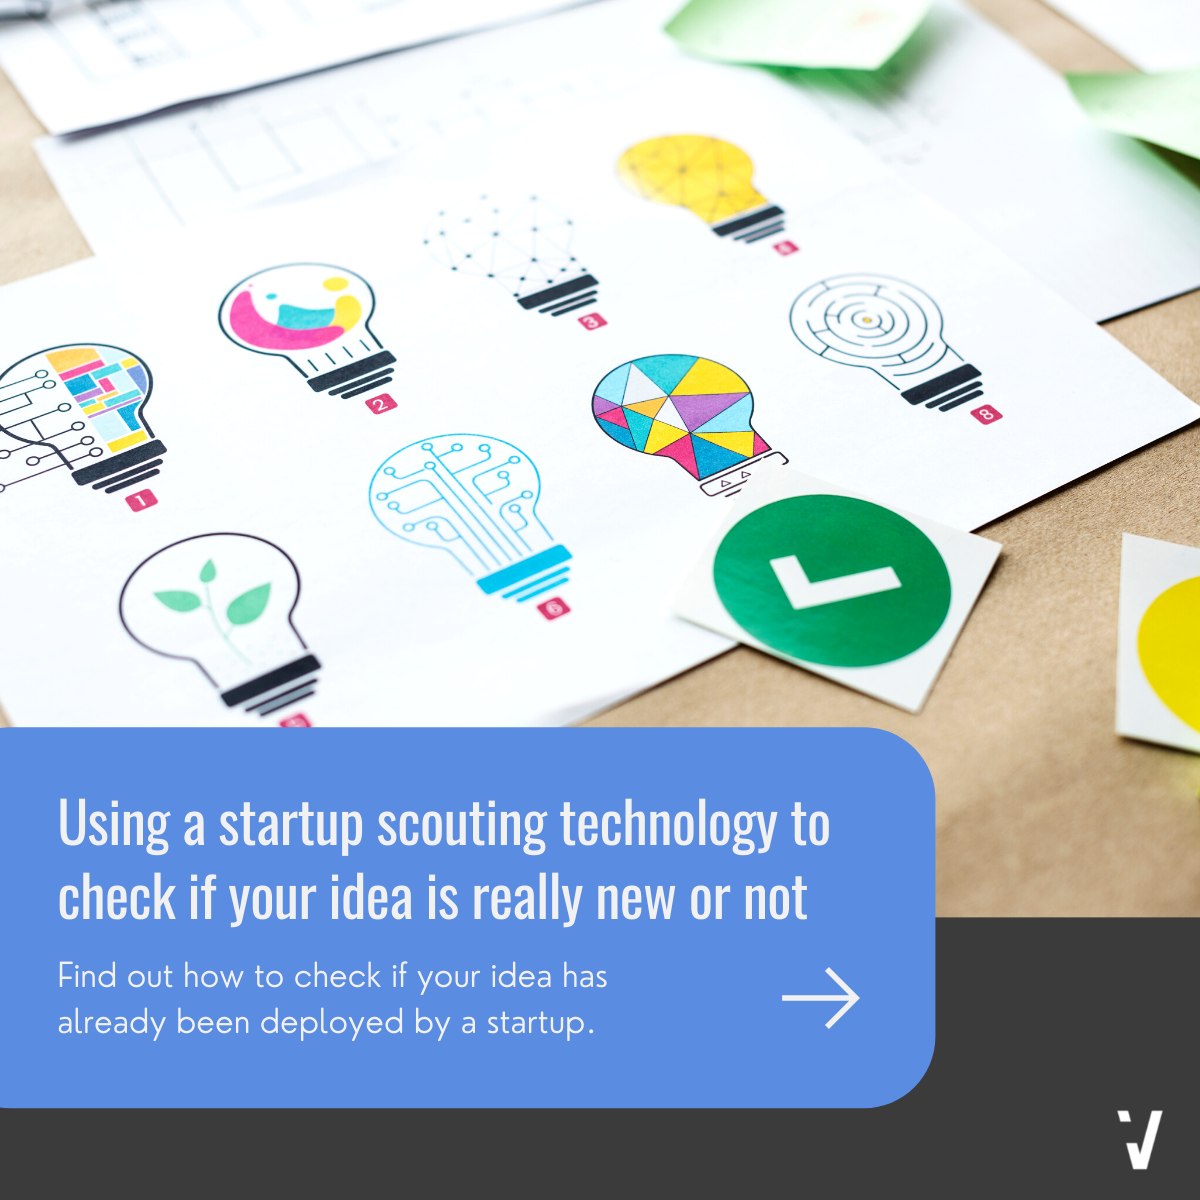 Startup scouting to check if your idea exists